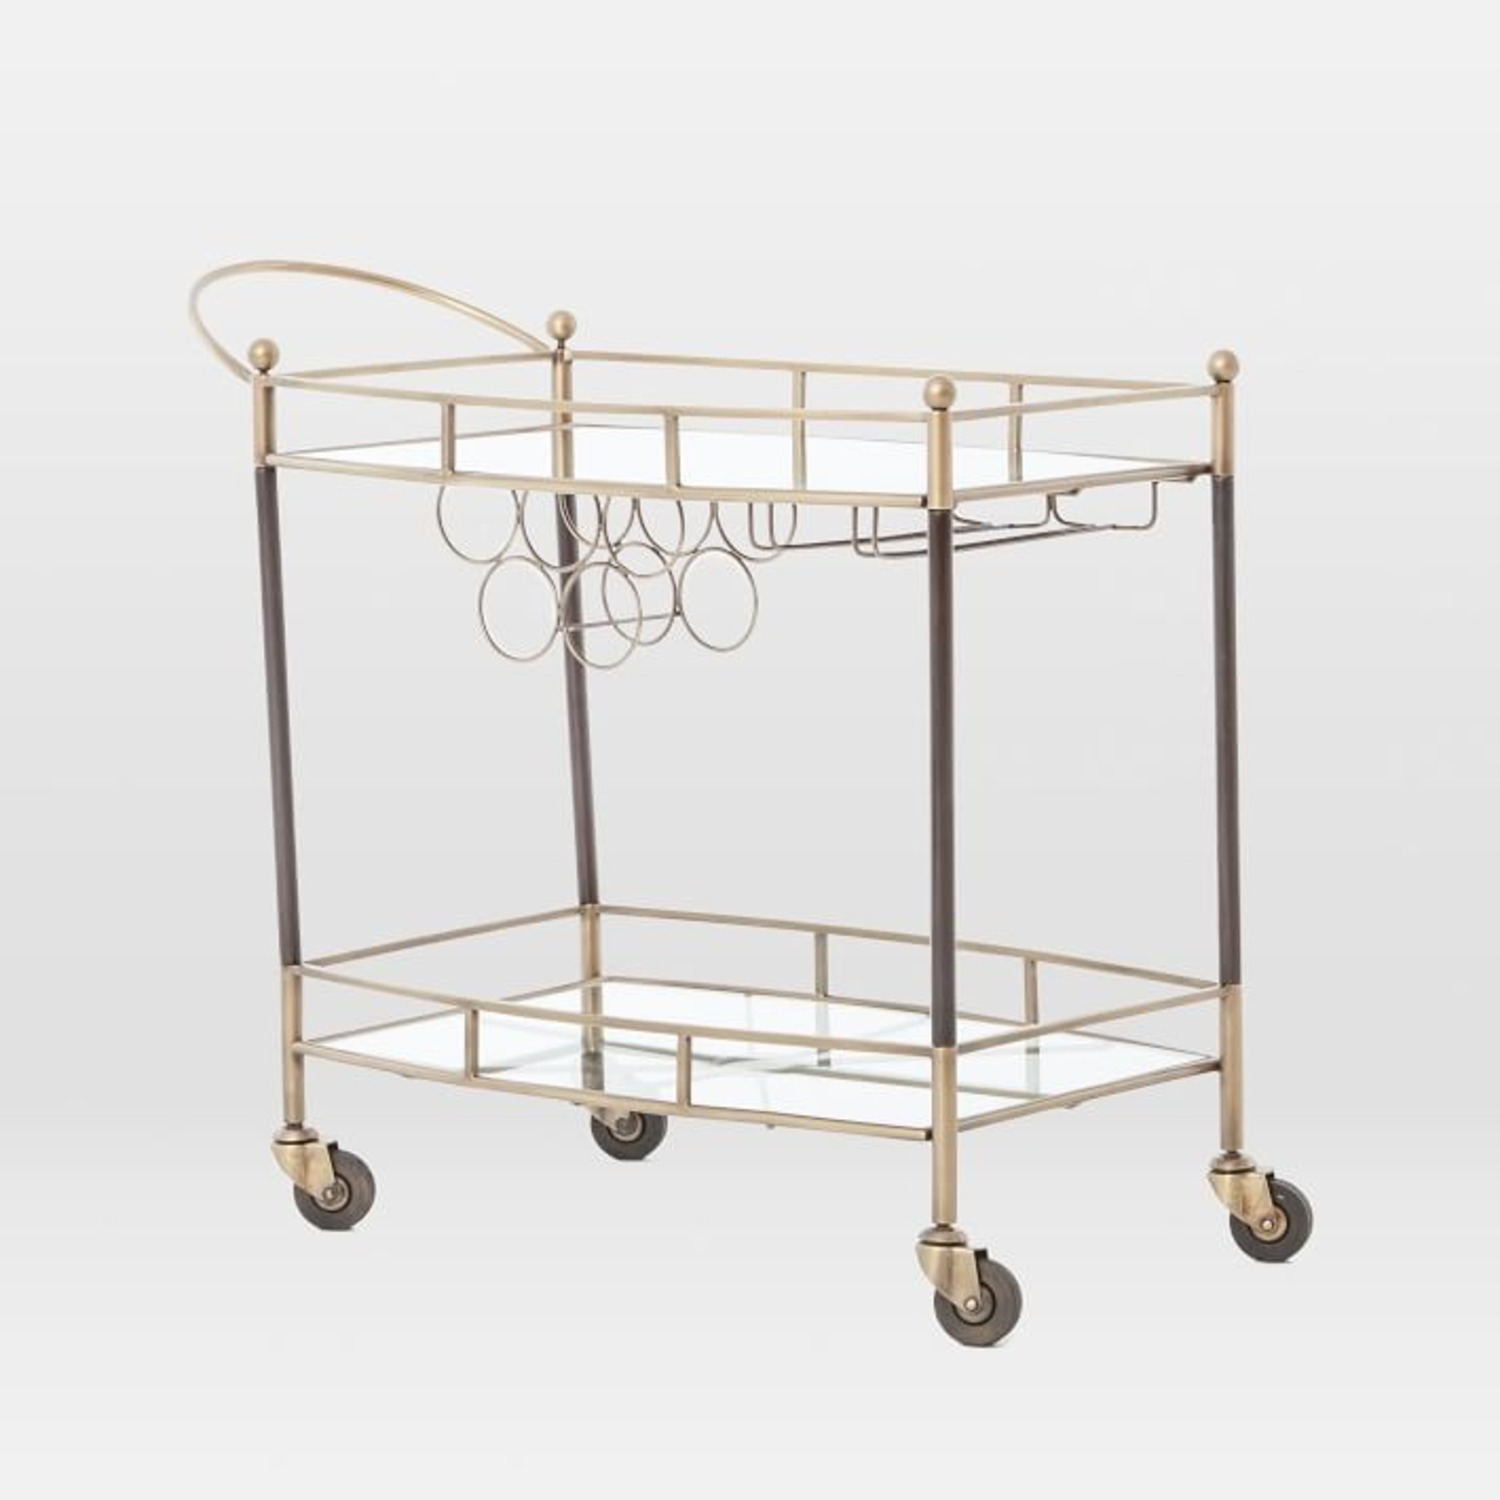 West Elm Aster Bar Cart - image-1